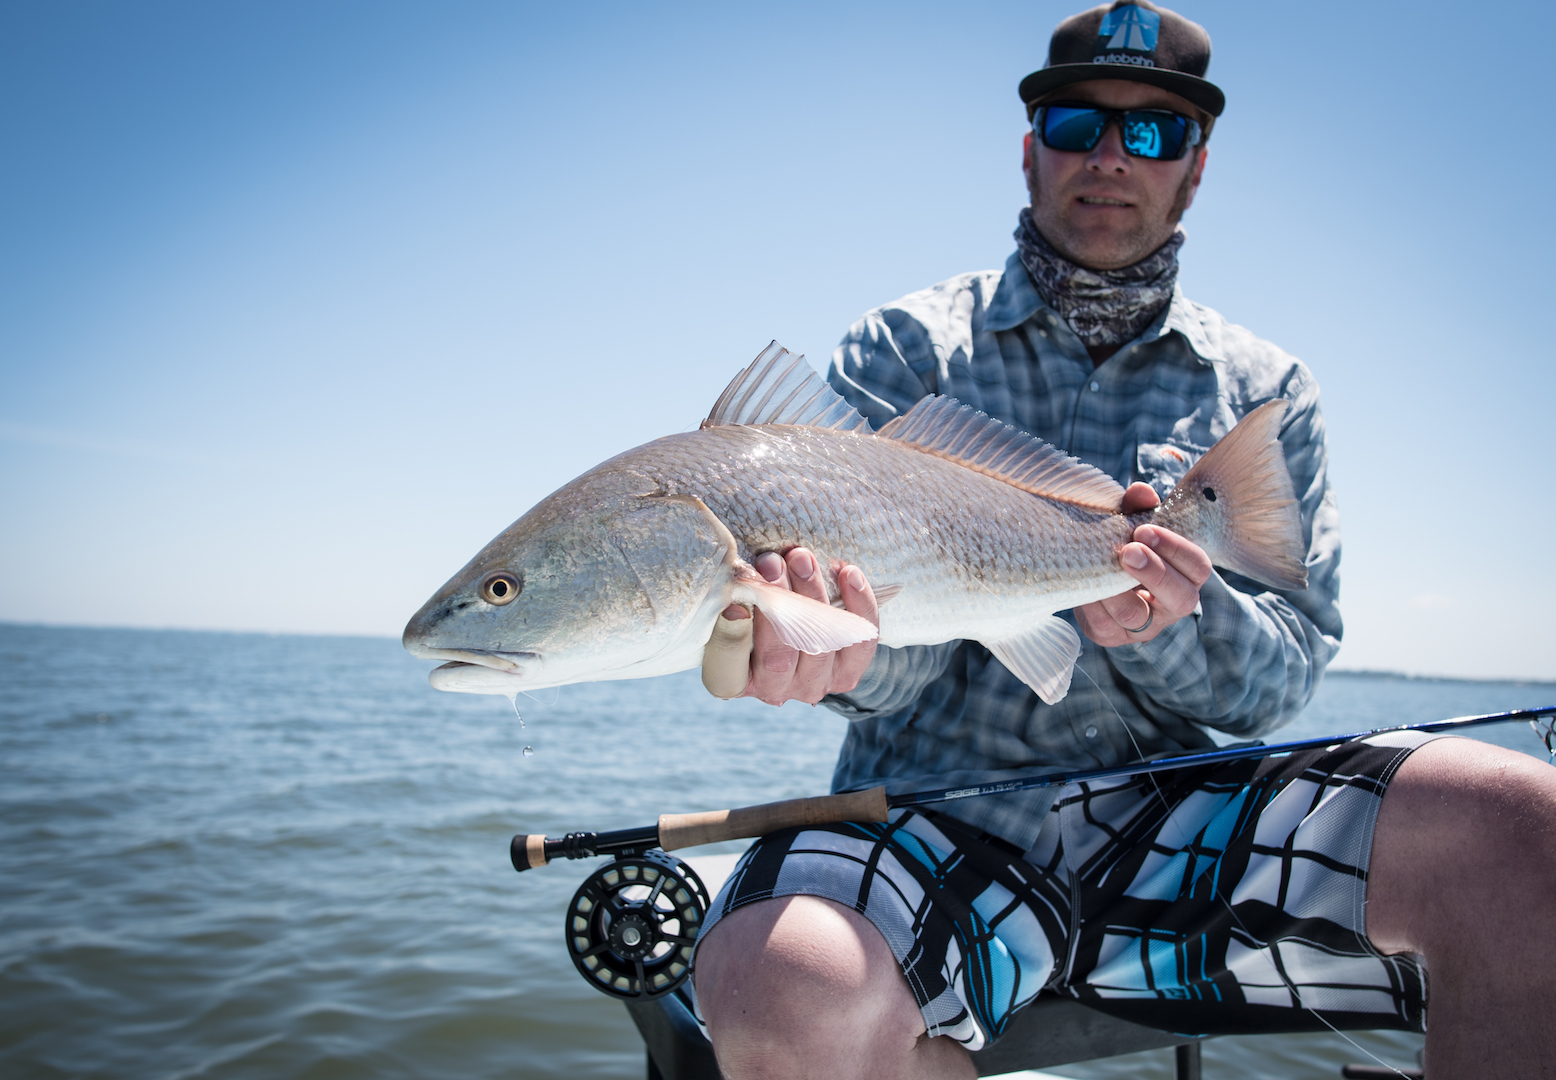 May 2017 mosquito lagoon indian river fishing report for Vero beach fishing report